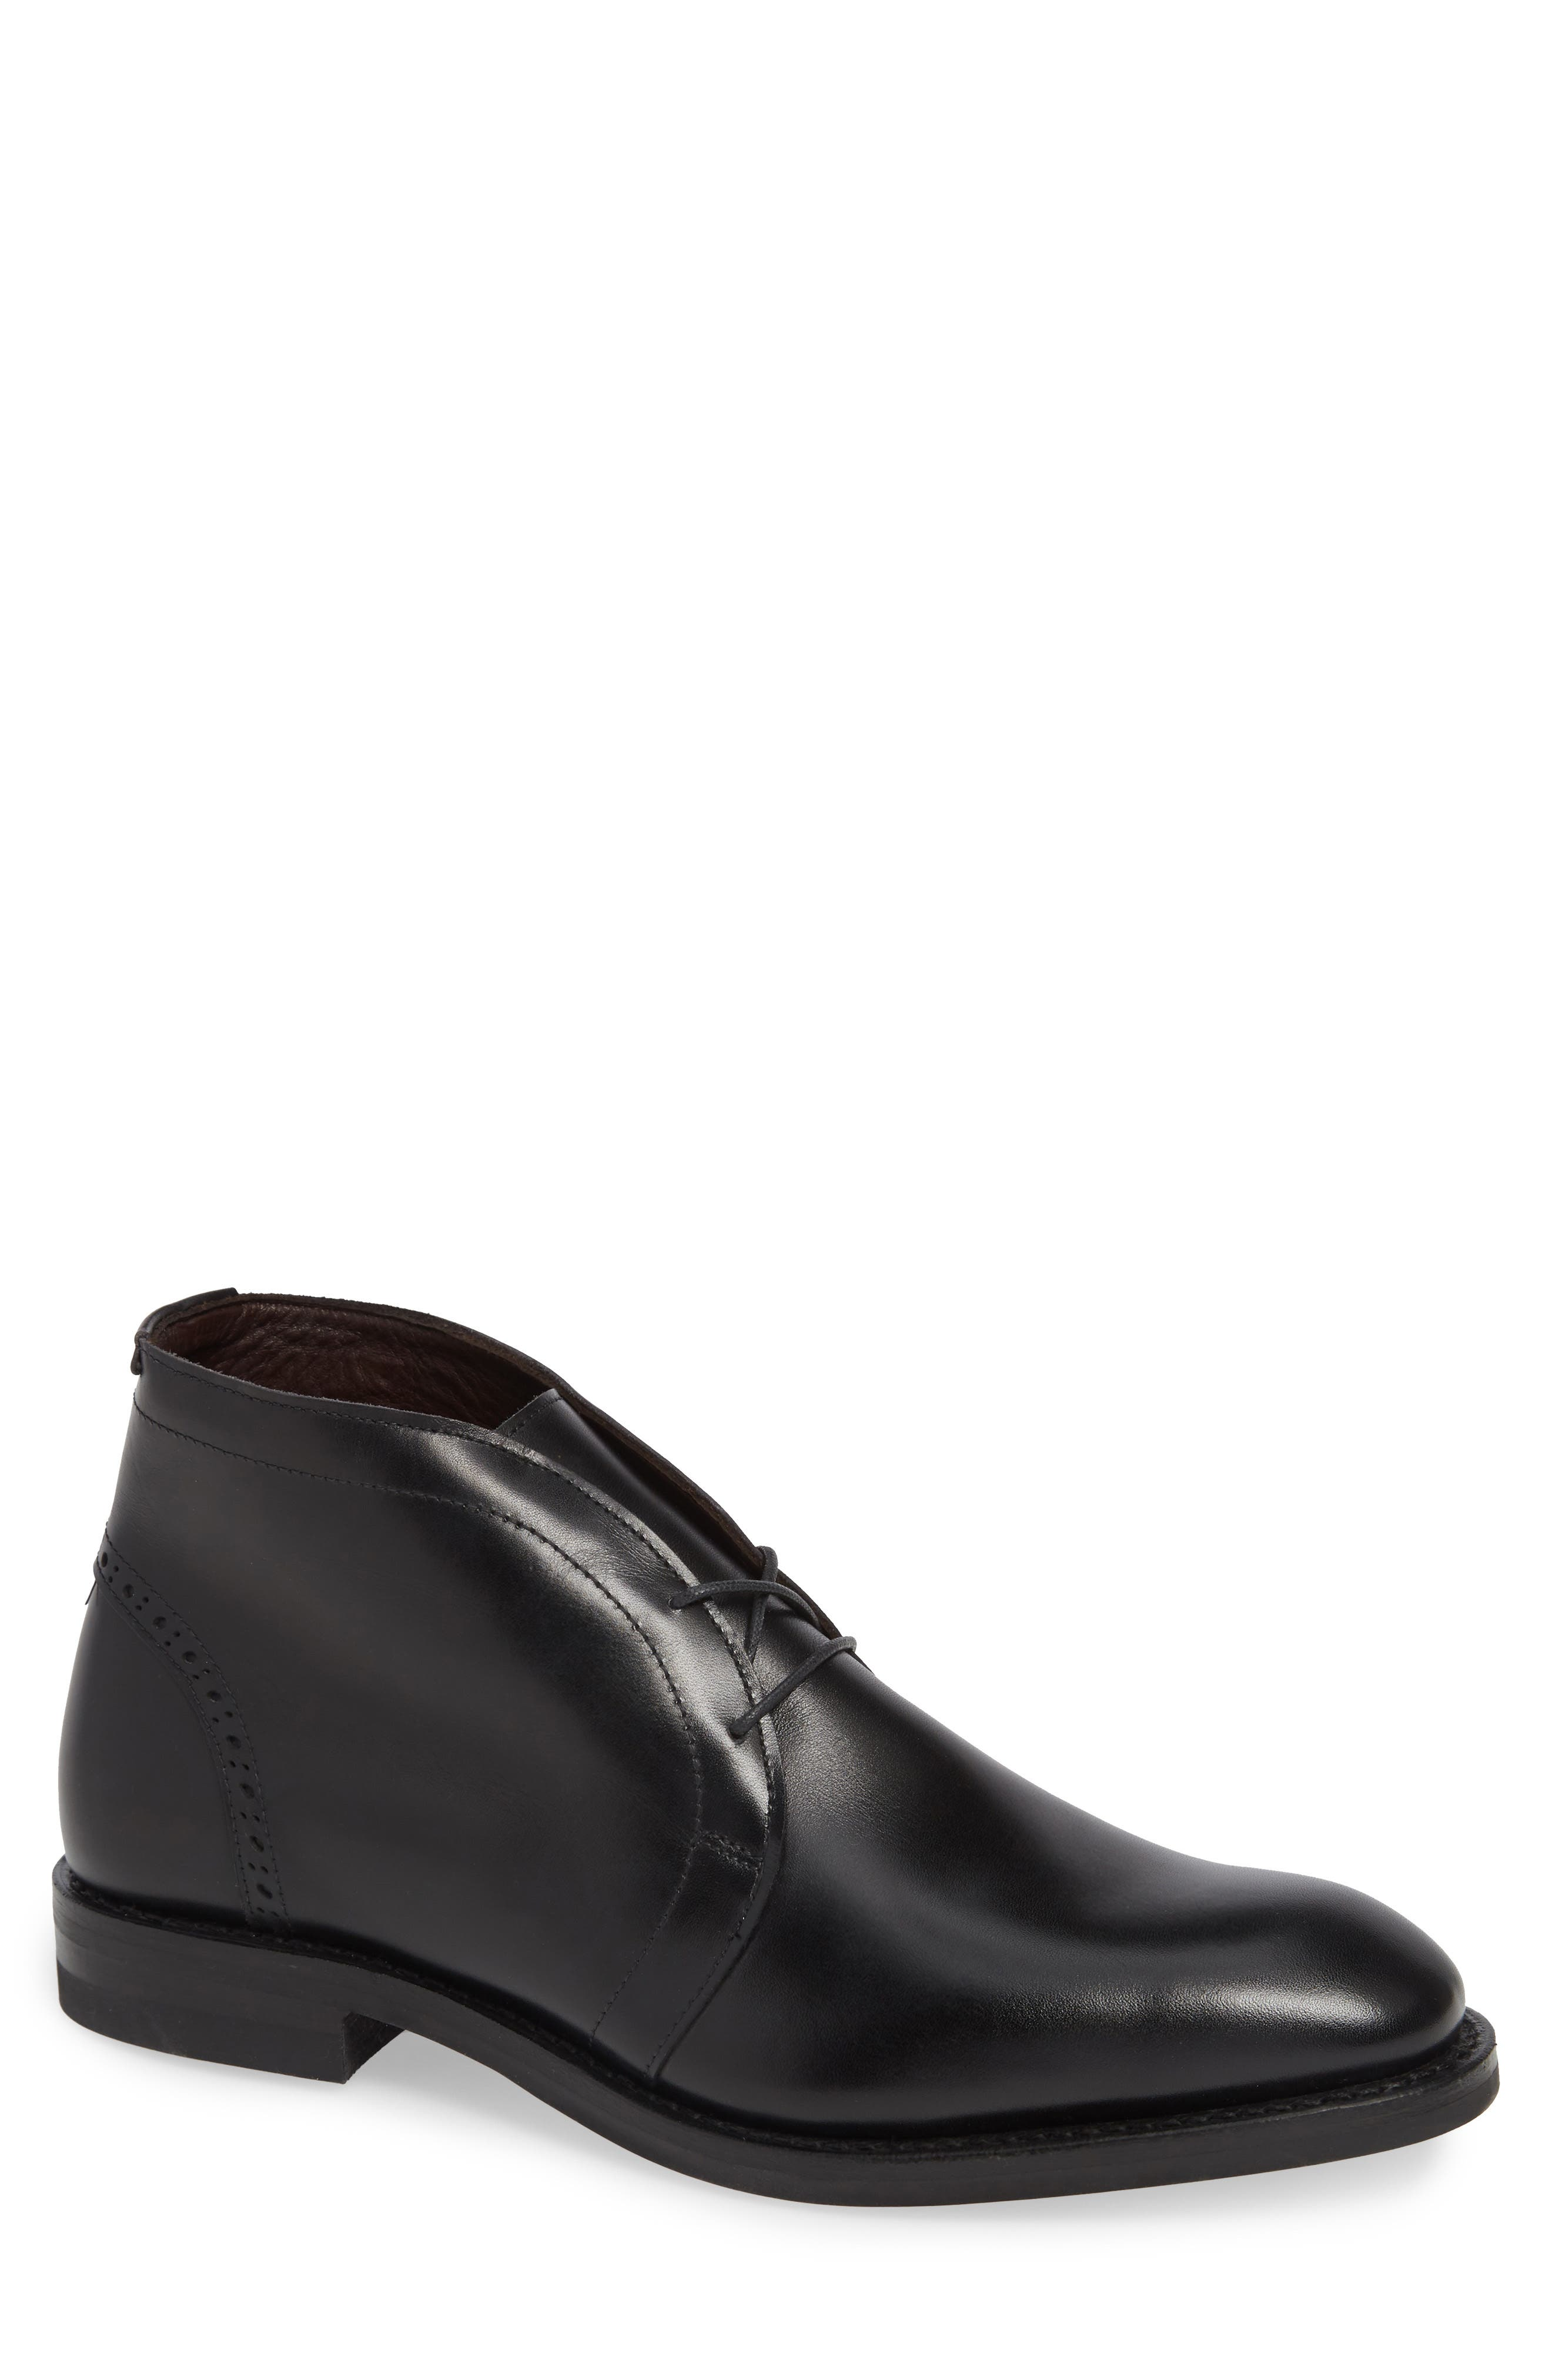 Renton Chukka Boot,                         Main,                         color, BLACK LEATHER